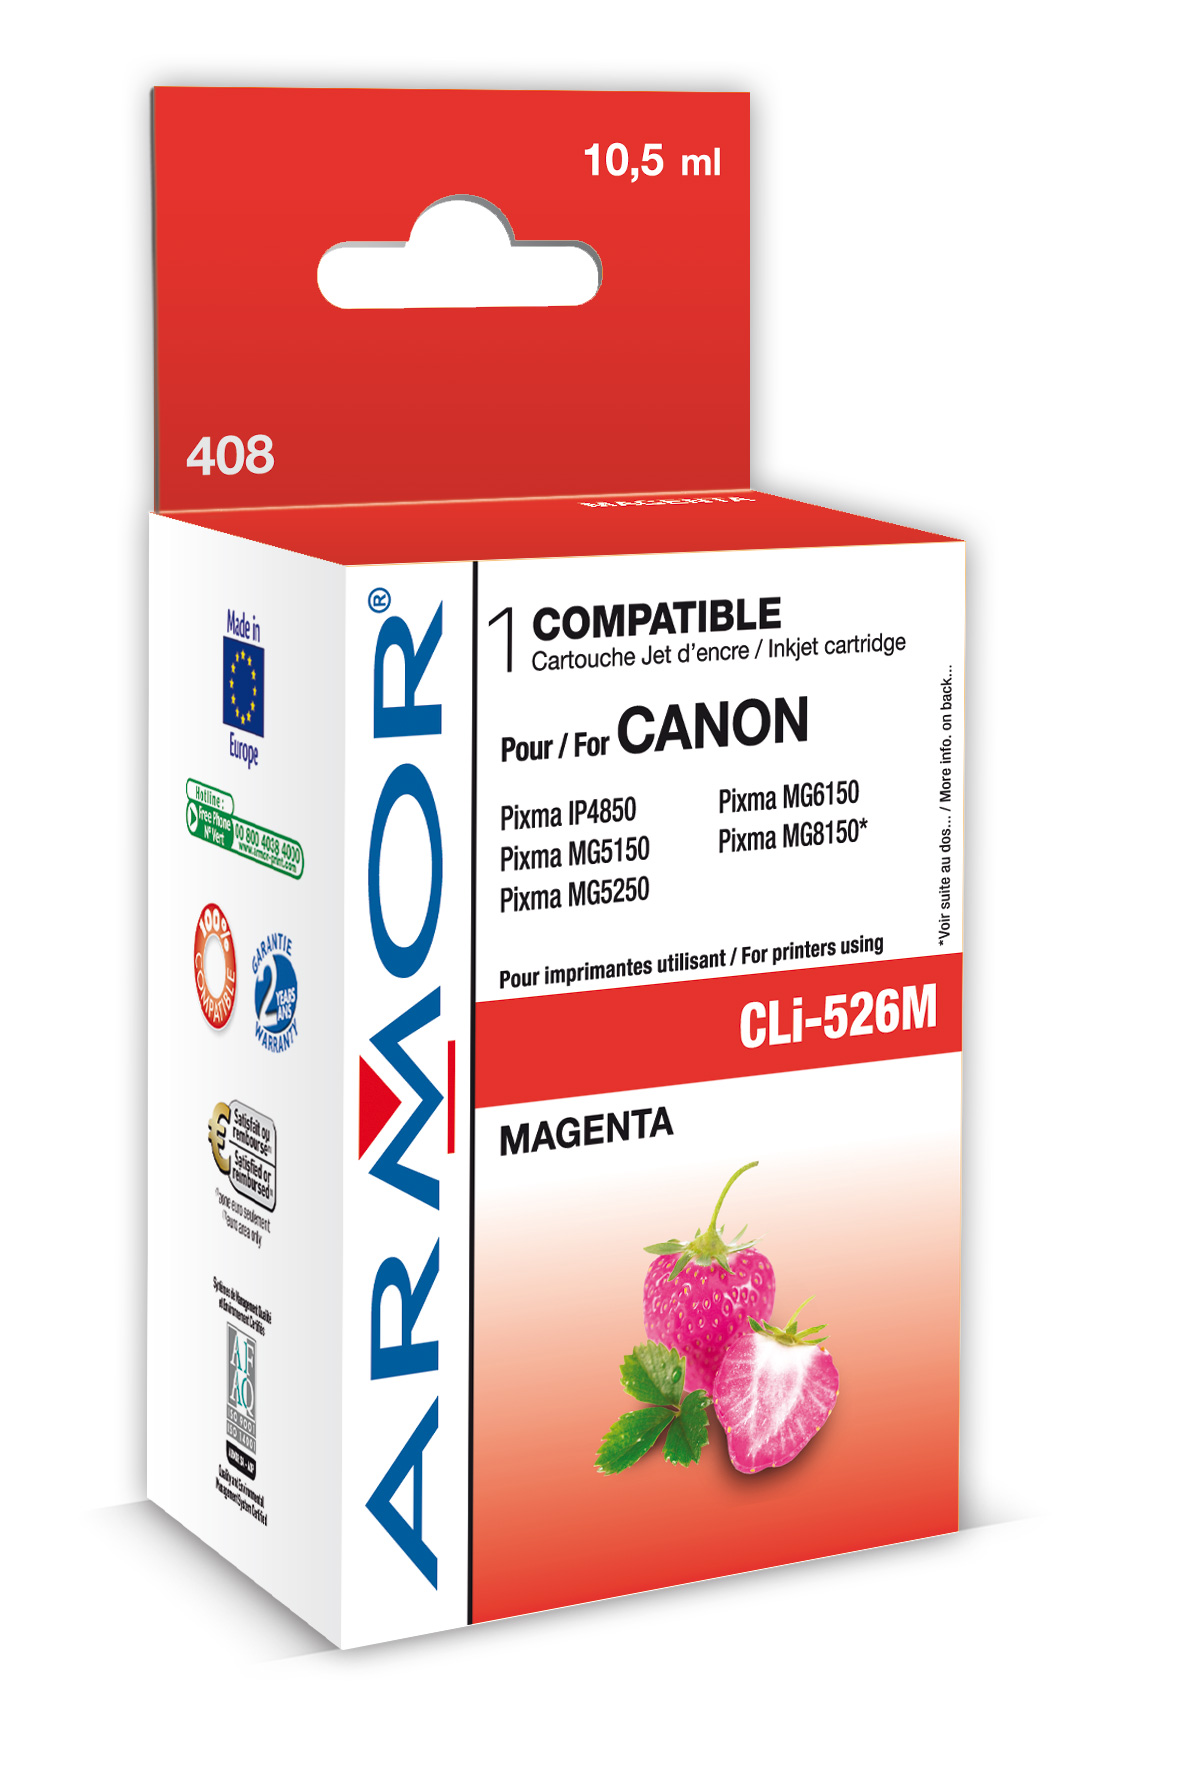 Armor ink-jet pro Canon CLi-526, 10,5ml, magenta - obr.1